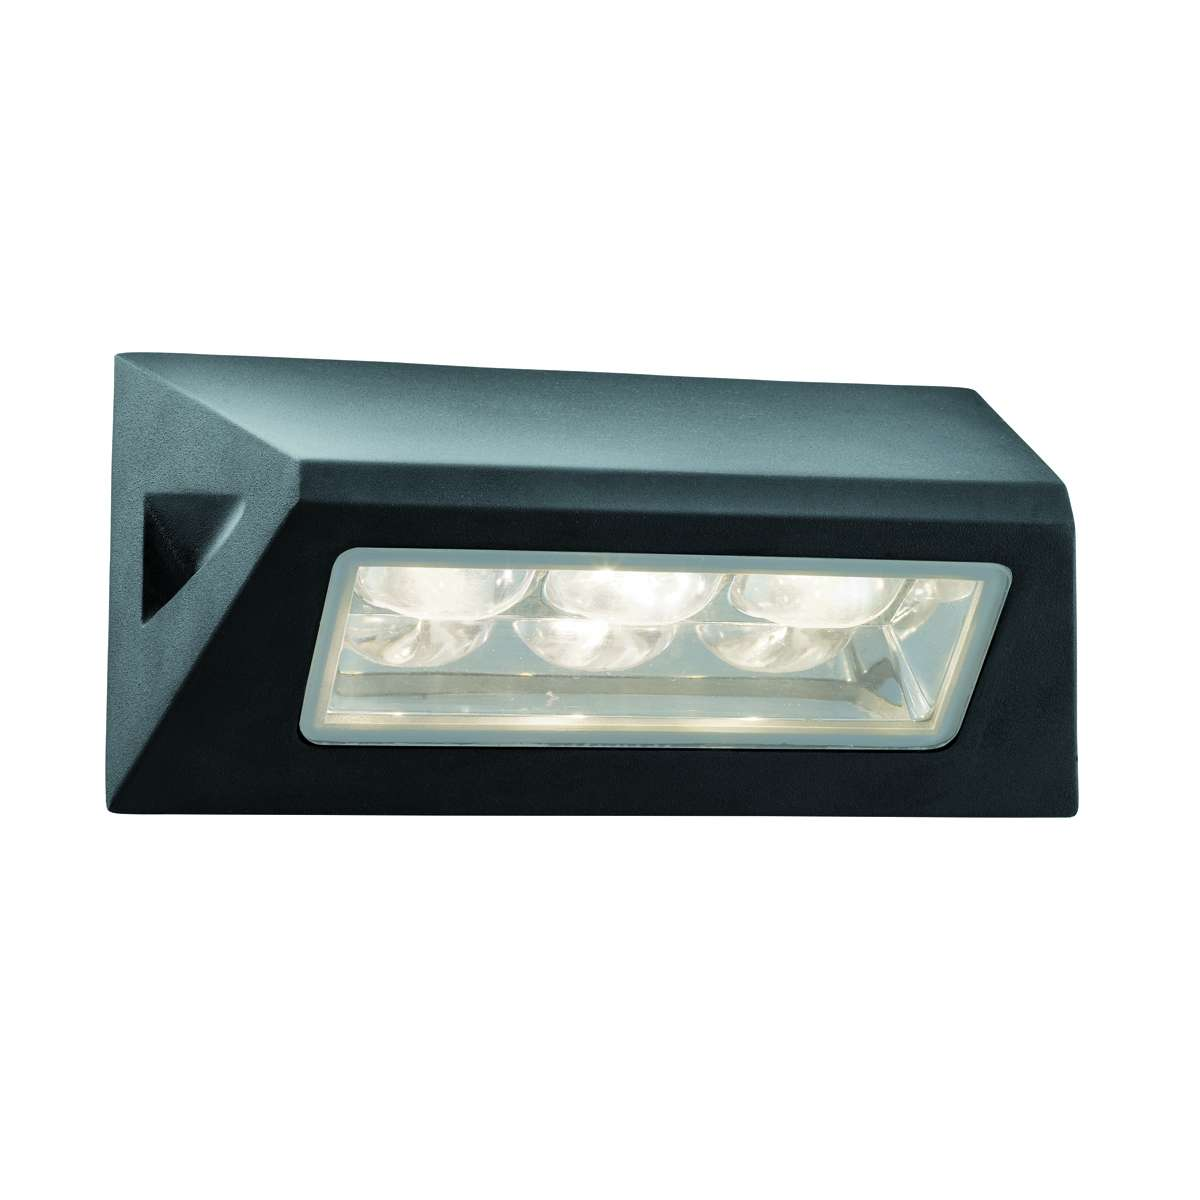 Ip44 3led Outdoor Oblong Wall Light